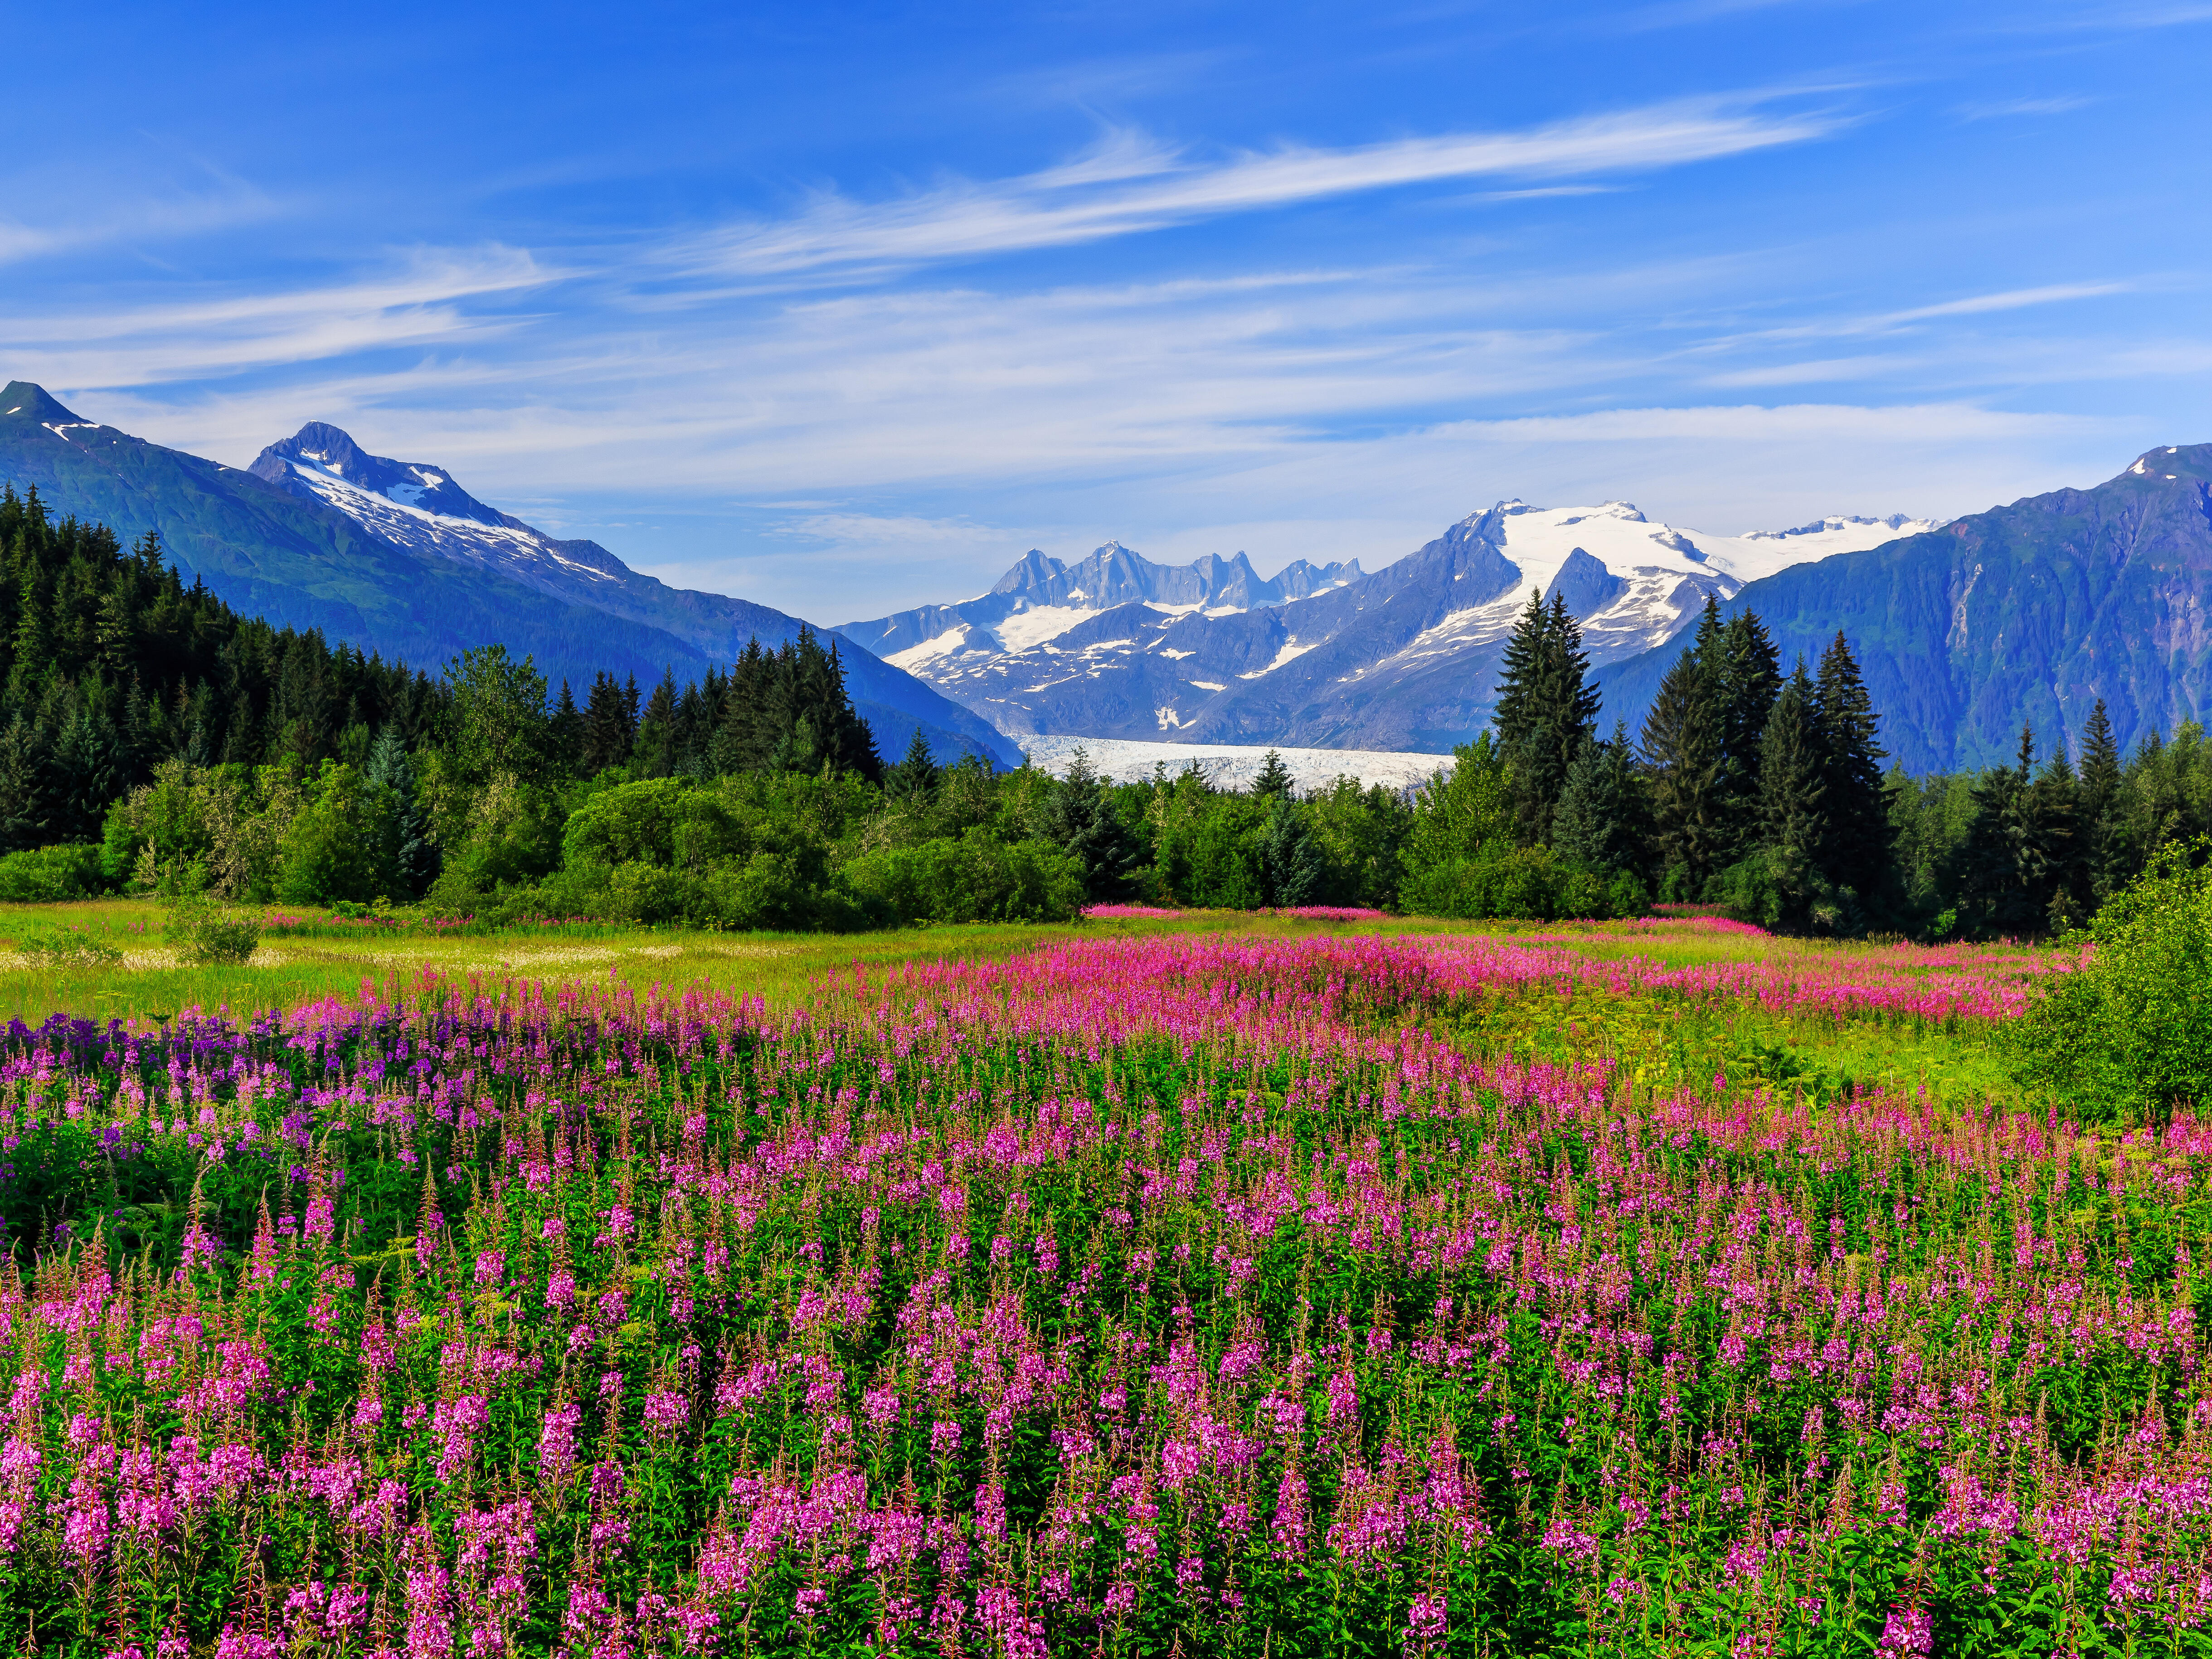 5 Best Alaska Cruises 2018 With Prices Cruises To Alaska On Cruise Critic